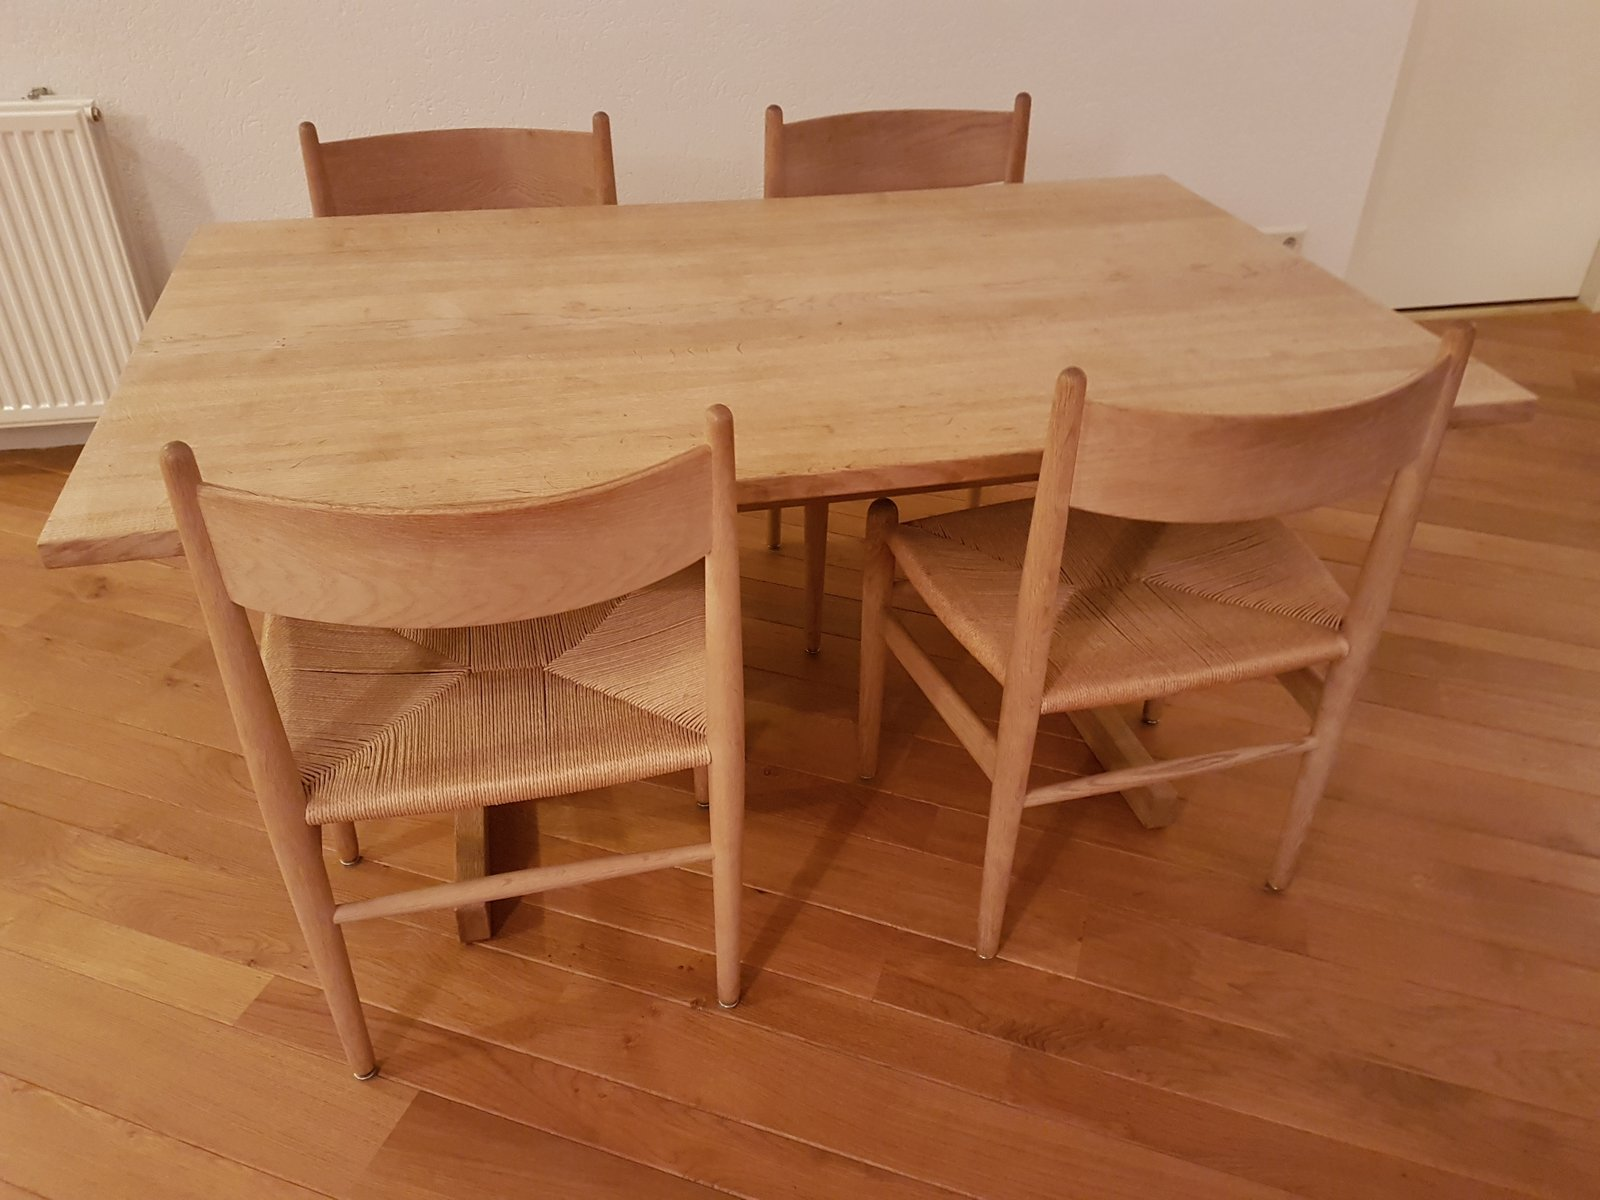 Dining Table With Four Chairs By Hans J Wegner 1970s For Sale At Pamono